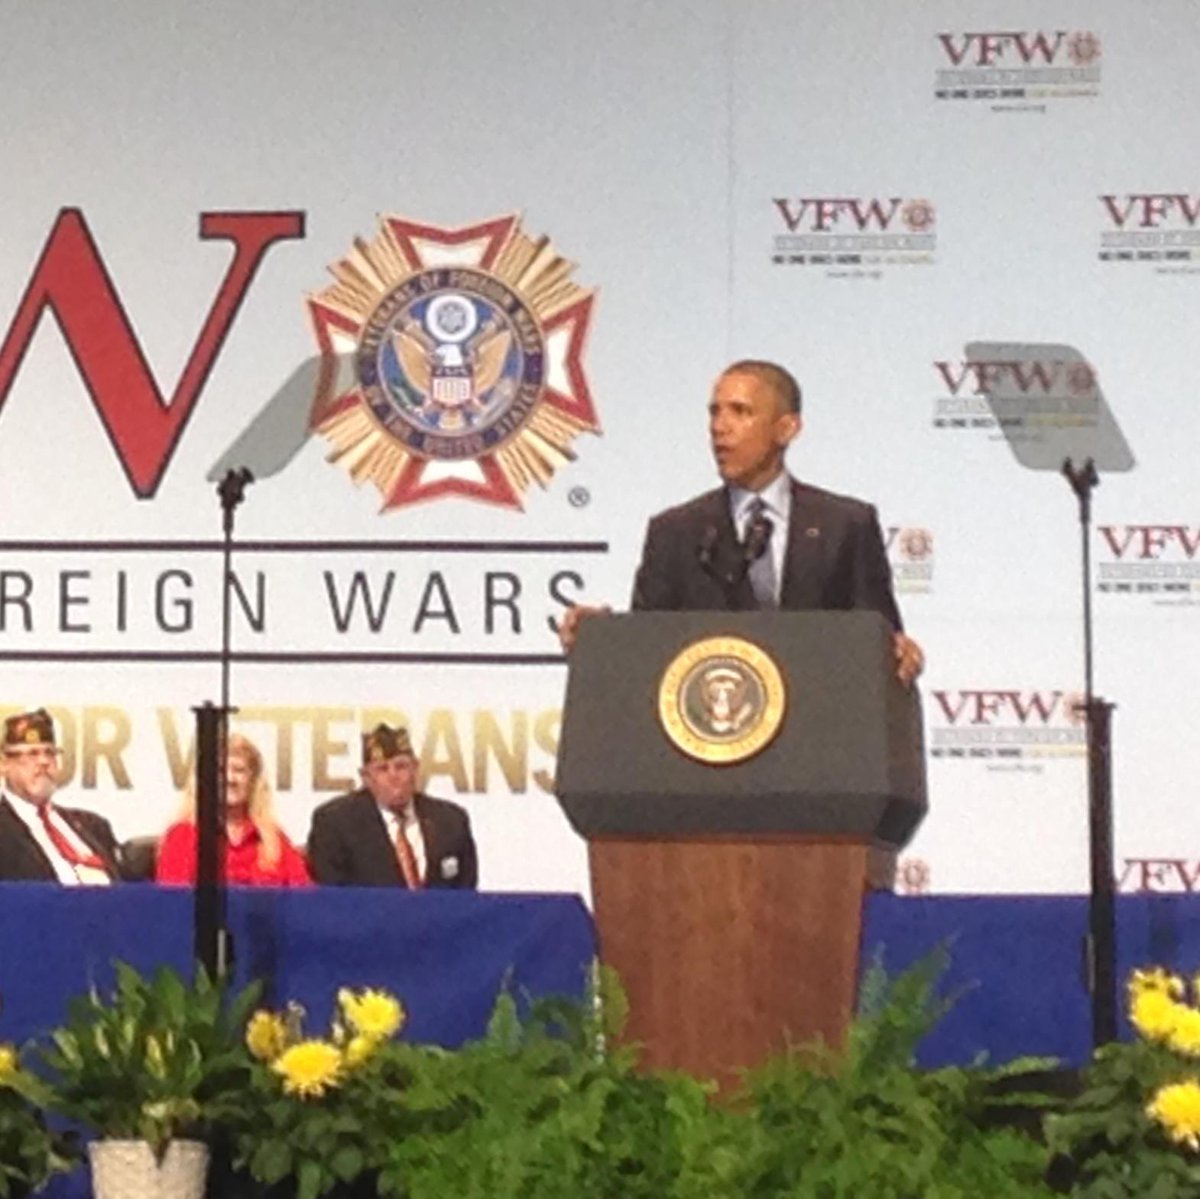 President Obama is greeted with a standing ovation at the #VFWConvention. http://t.co/YAMV5VDVAB